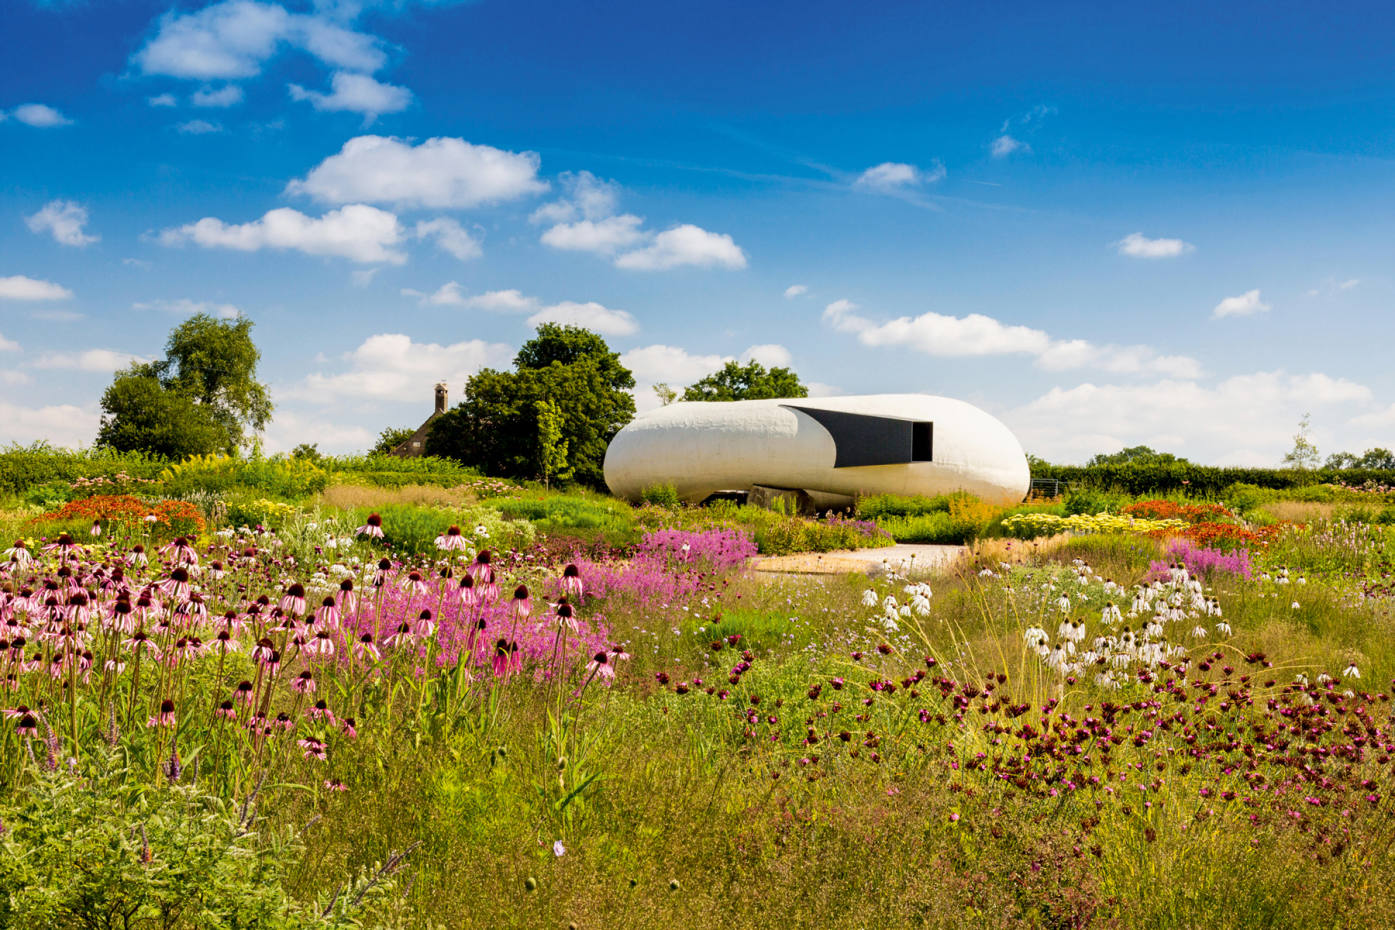 The Oudolf Field, a 1.5‑acre perennial meadow designed by Piet Oudolf for Hauser & Wirth Somerset